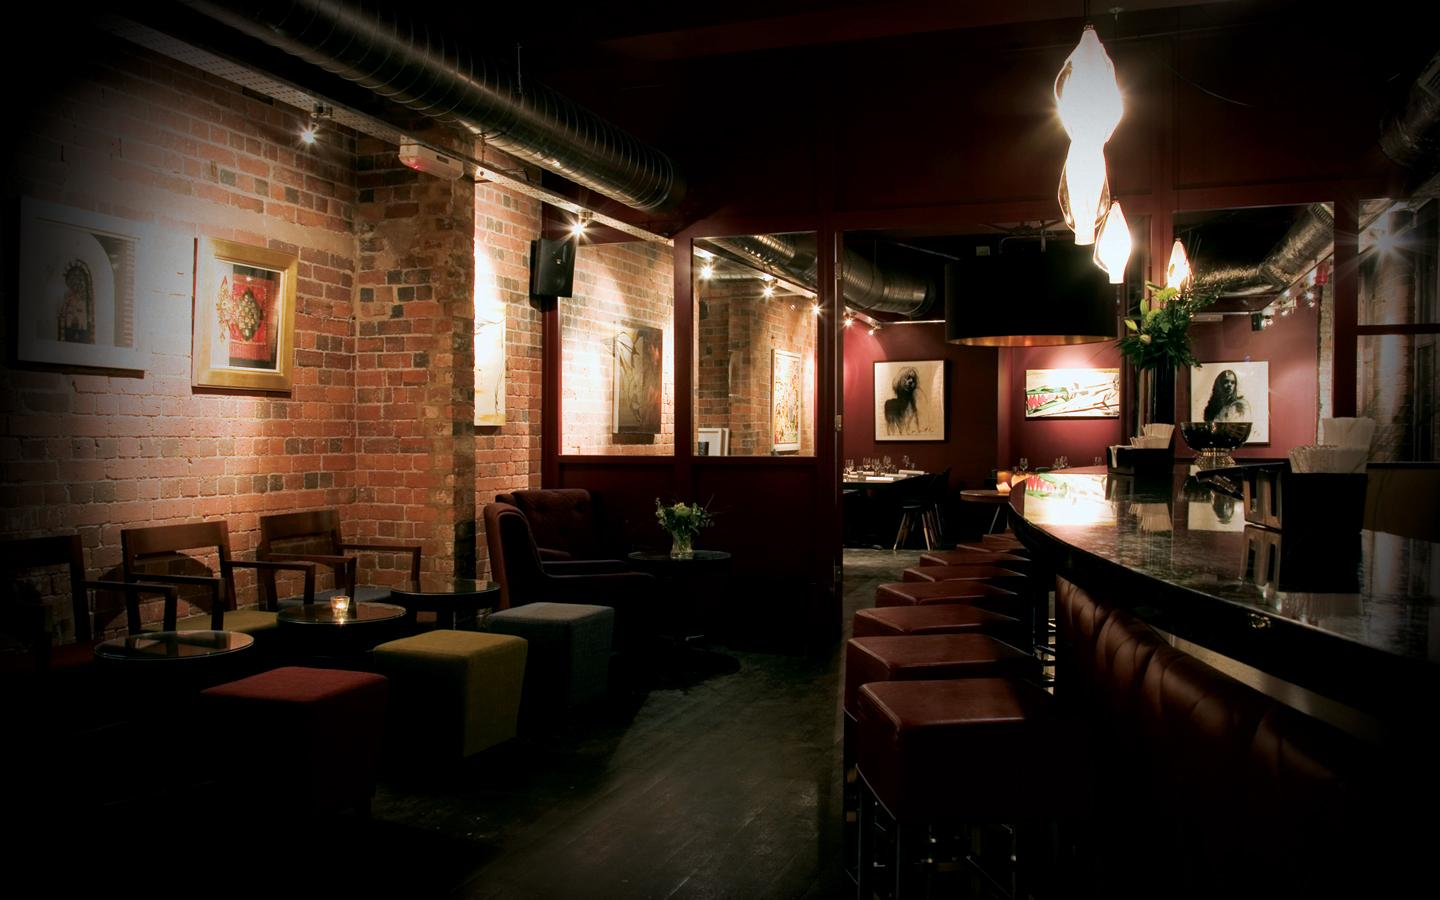 Speed Dating - £5 off! at The Vaults, Birmingham on 22nd November